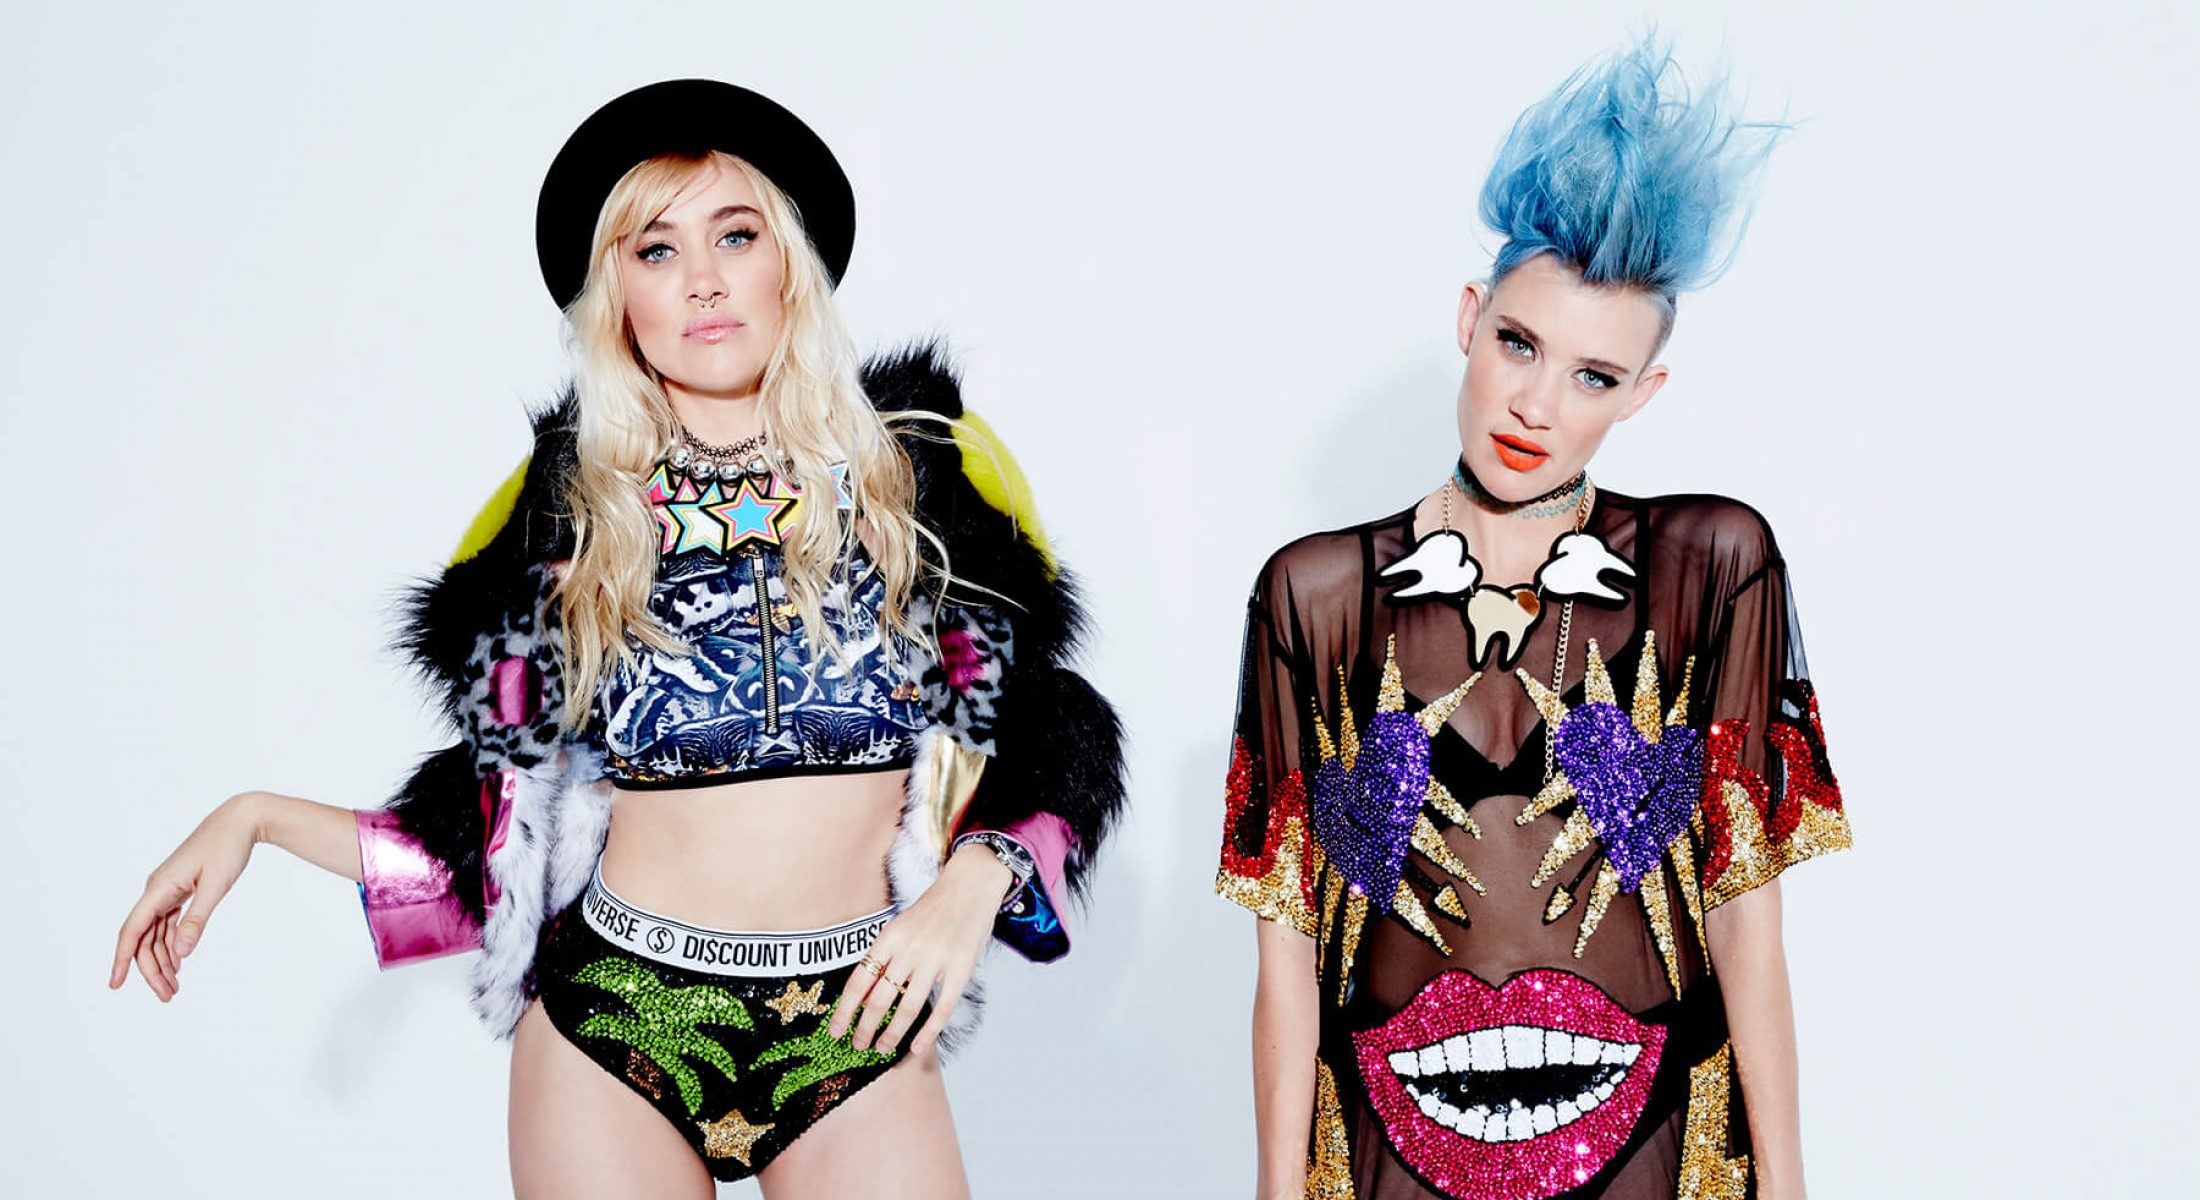 NERVO - Virgo Music Mgmt